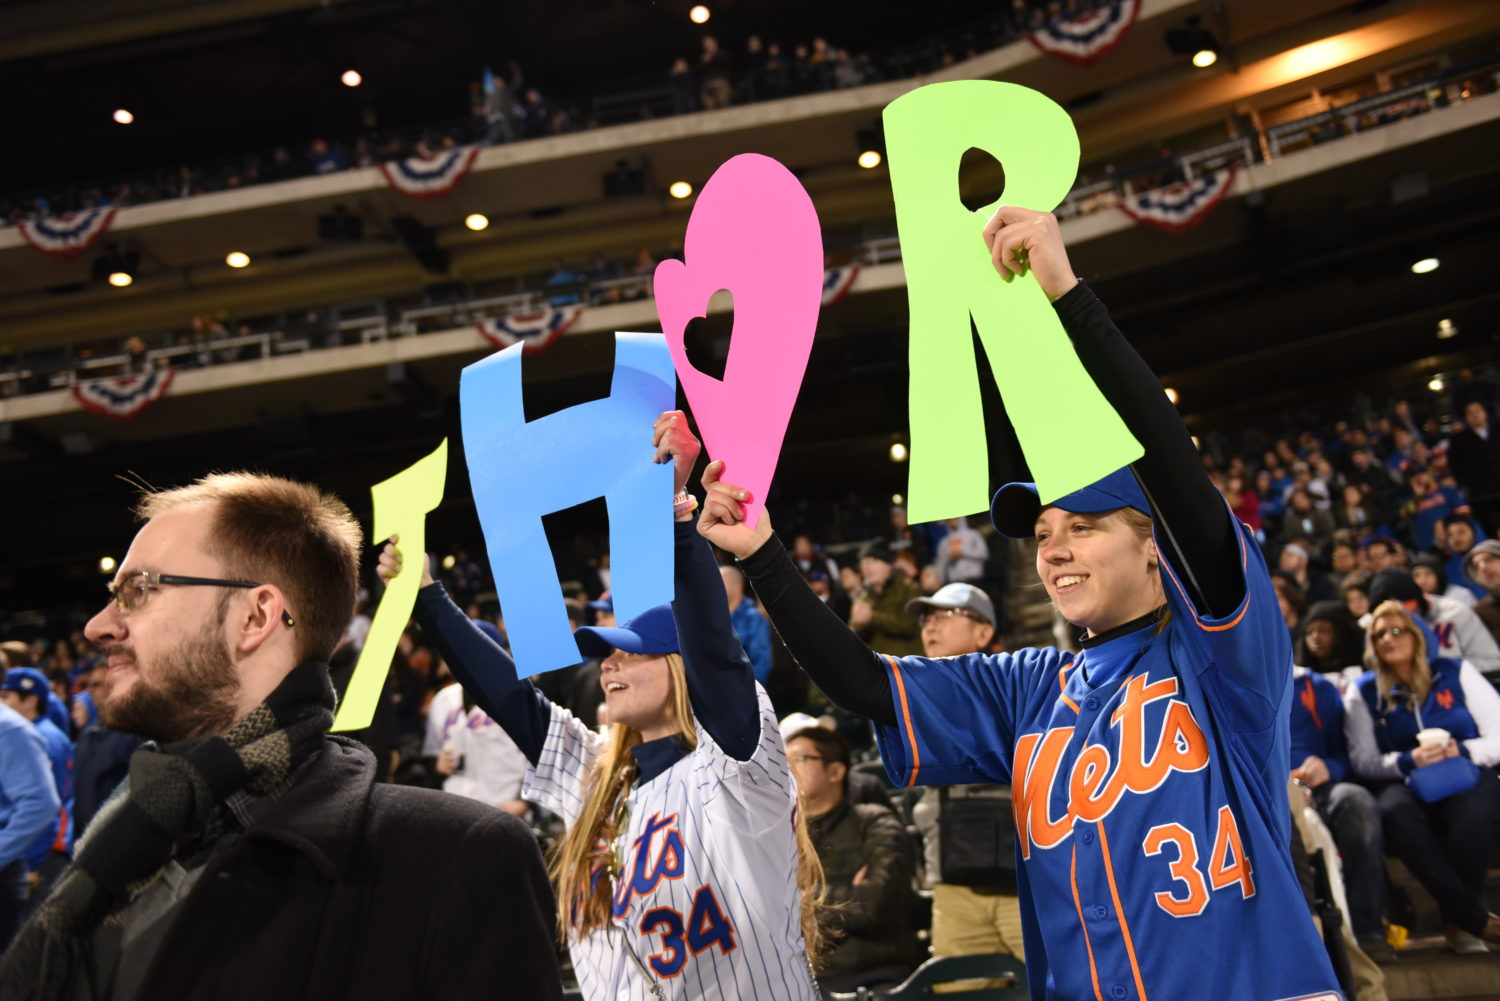 Fans Cheer on Thor Syndergaard